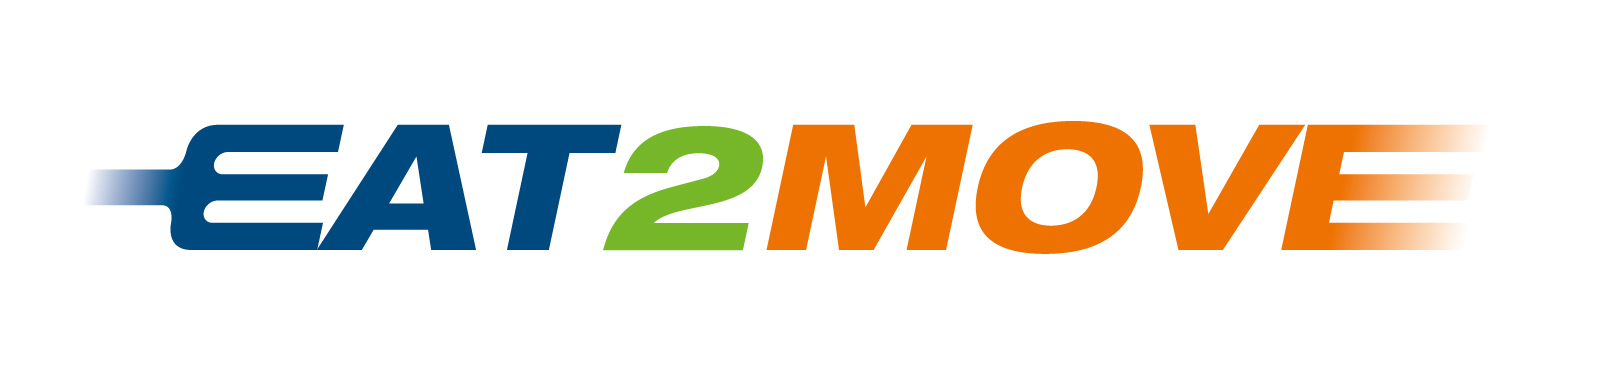 Eat2Move logo